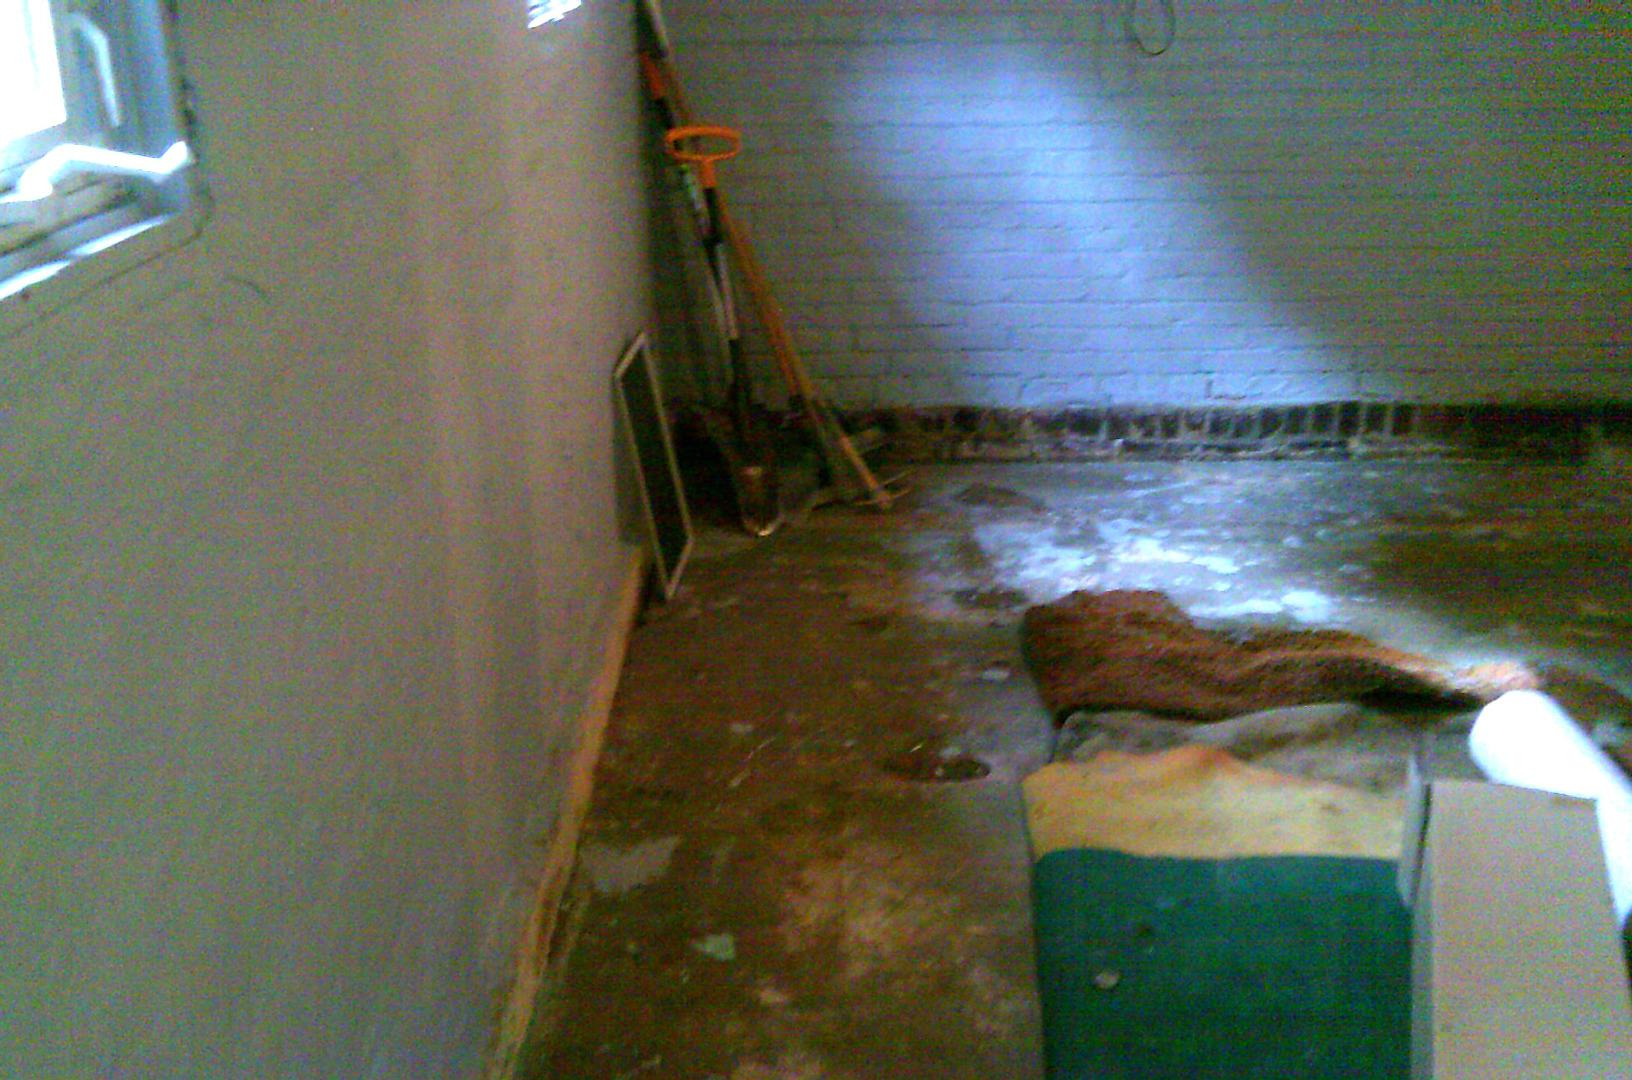 The basement before dank and susceptible to repeated water intrusion.